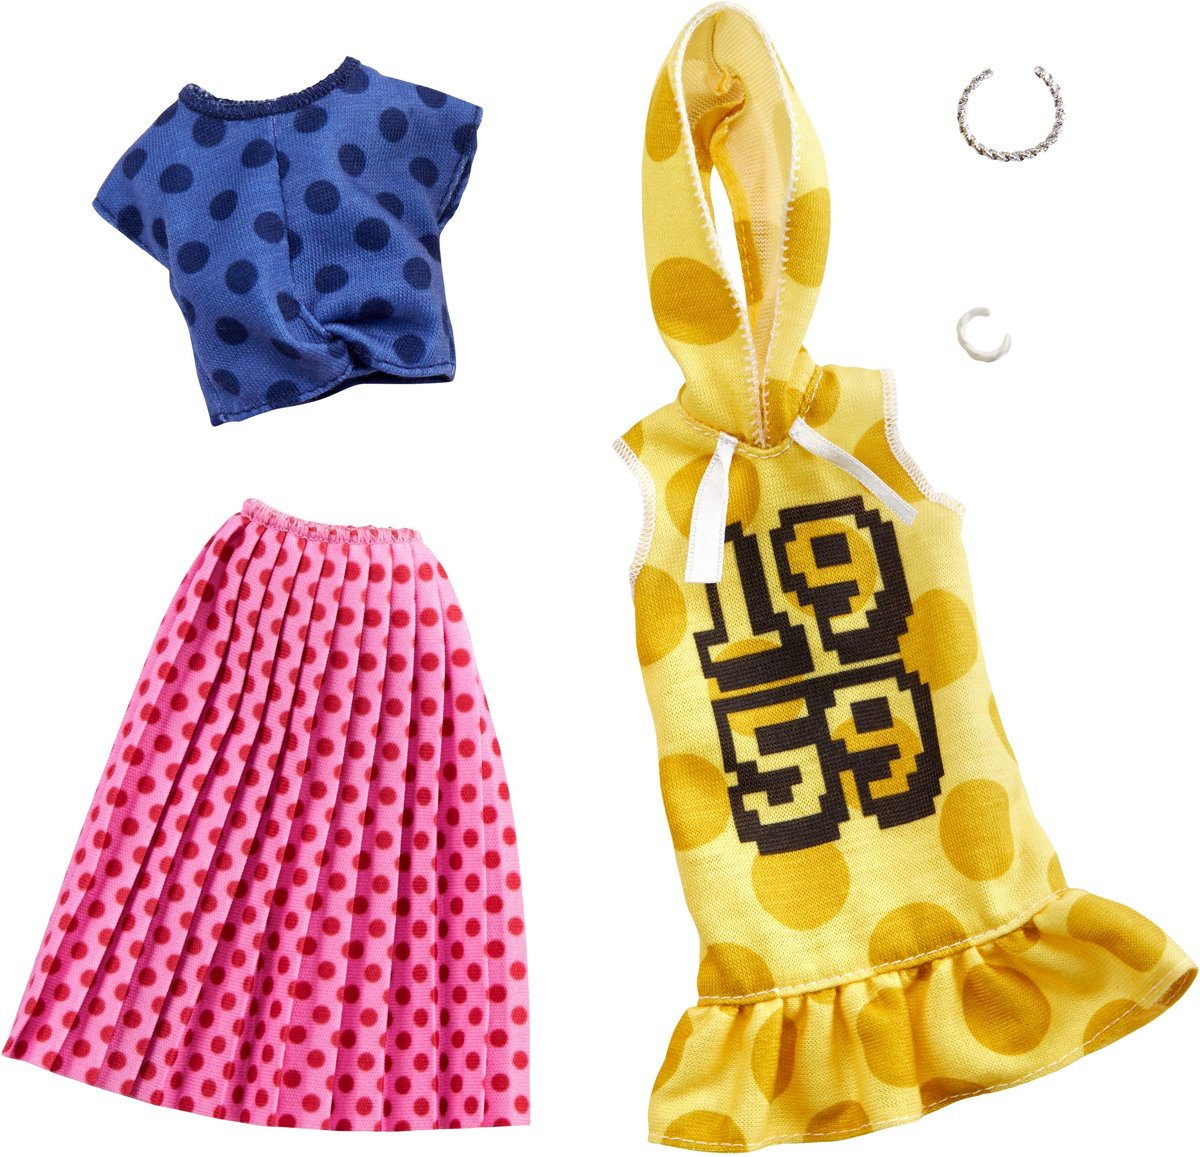 Fashions outfits 2-pack Polka Dots